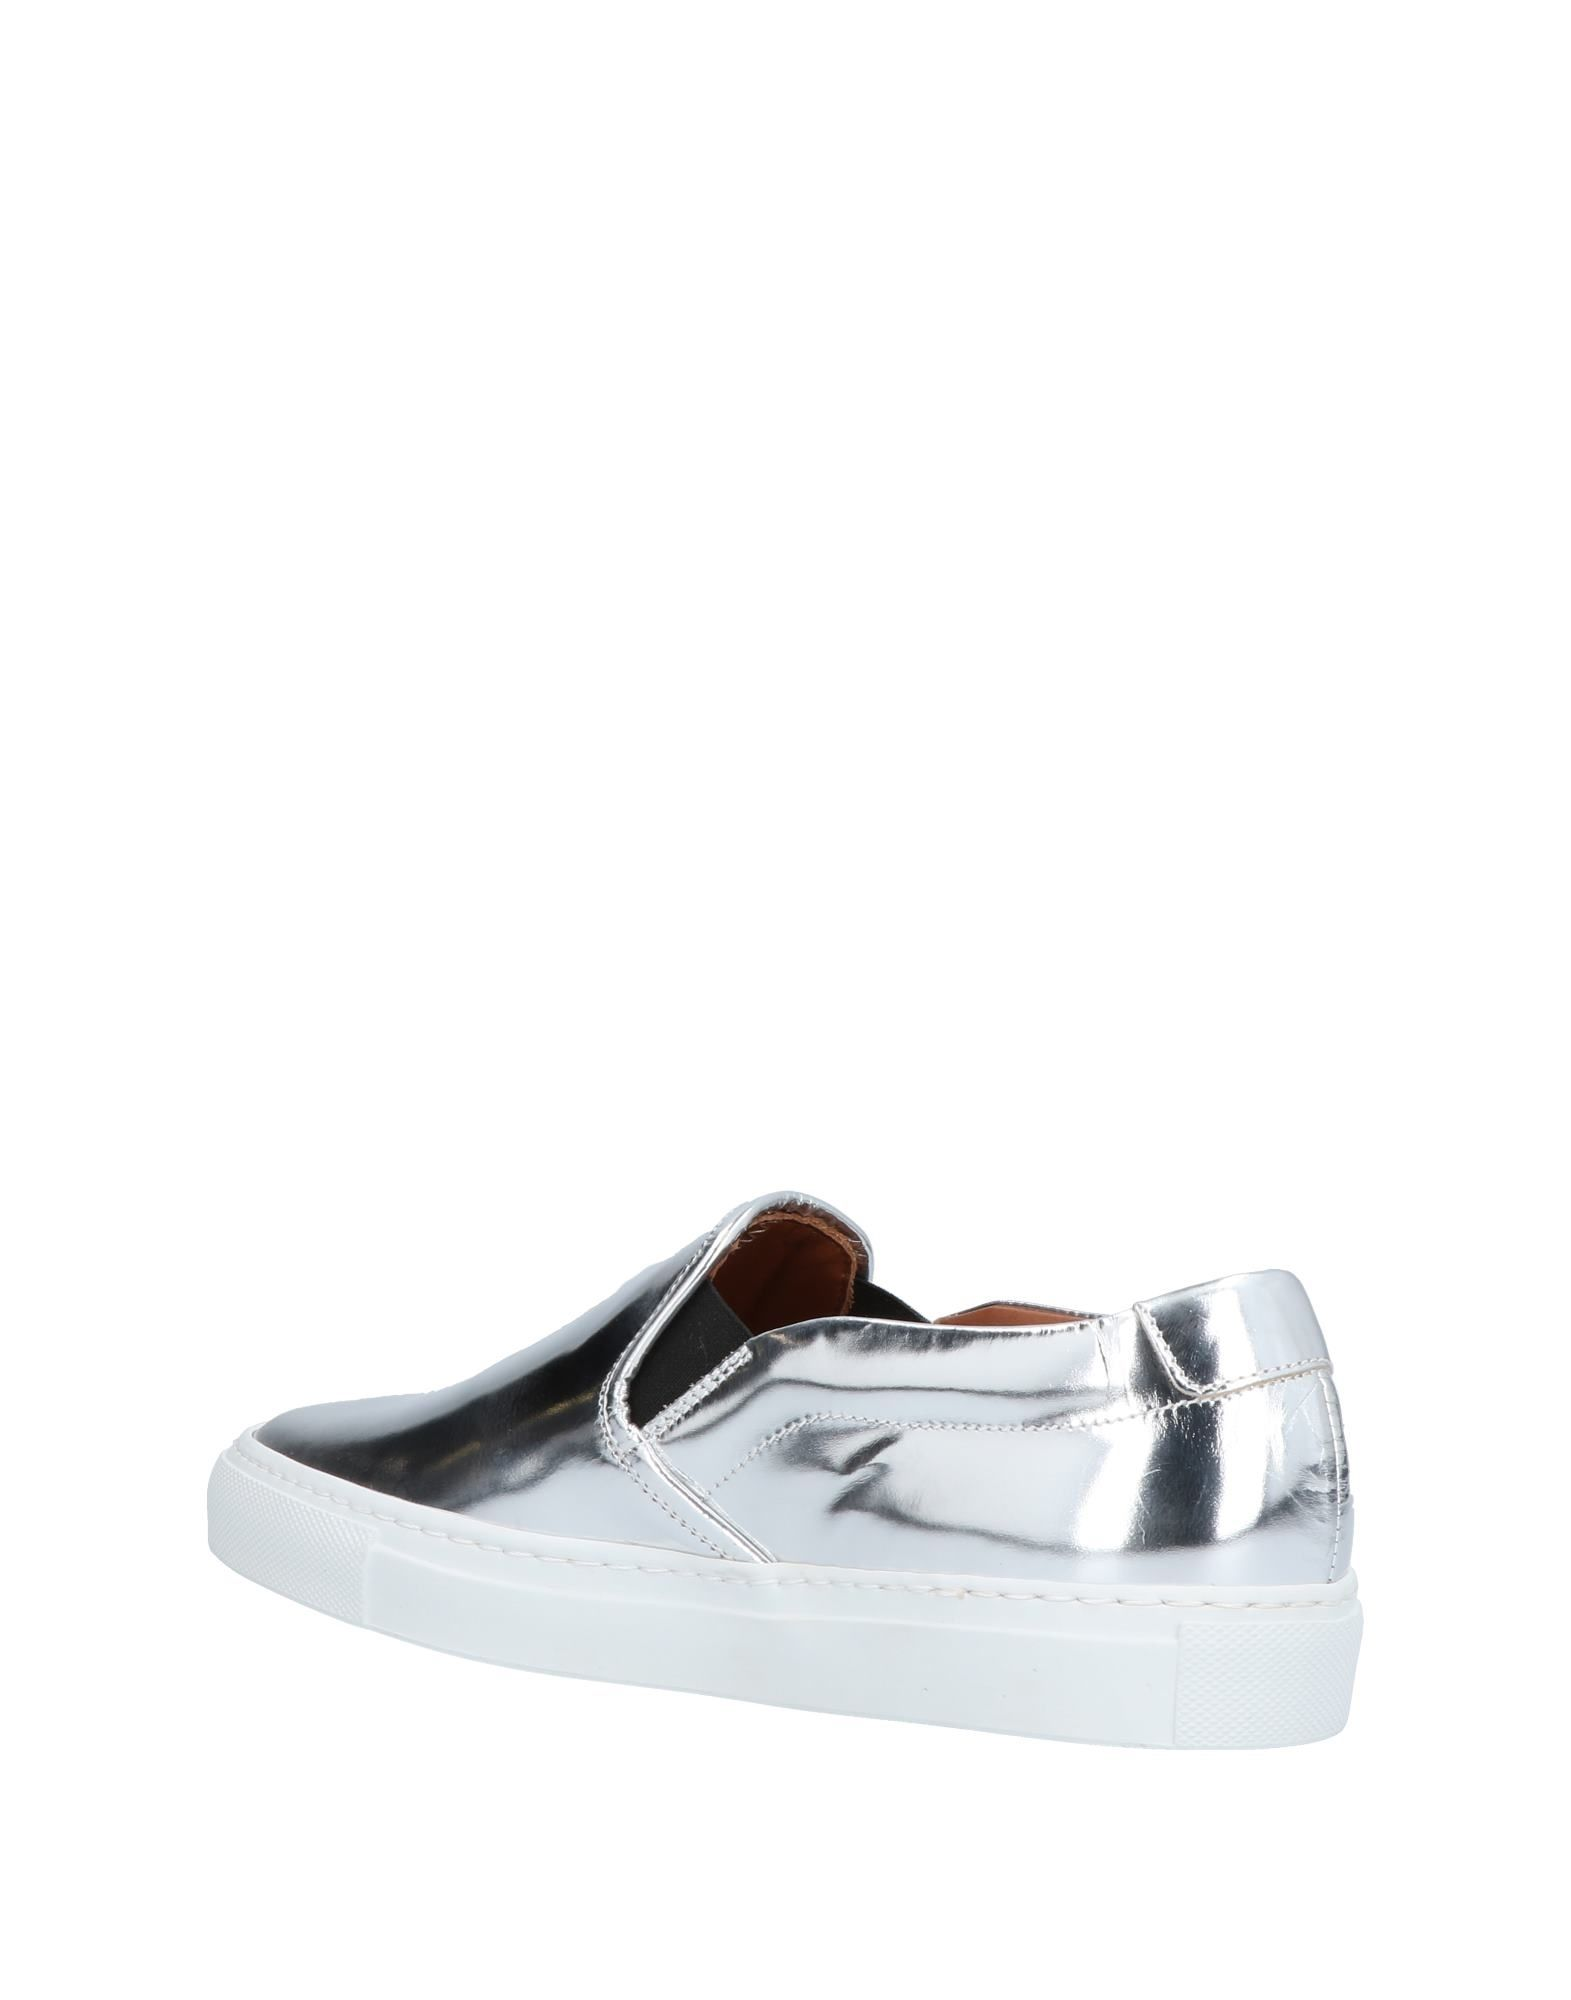 Sneakers Woman By Common Projects Femme - Sneakers Woman By Common Projects sur